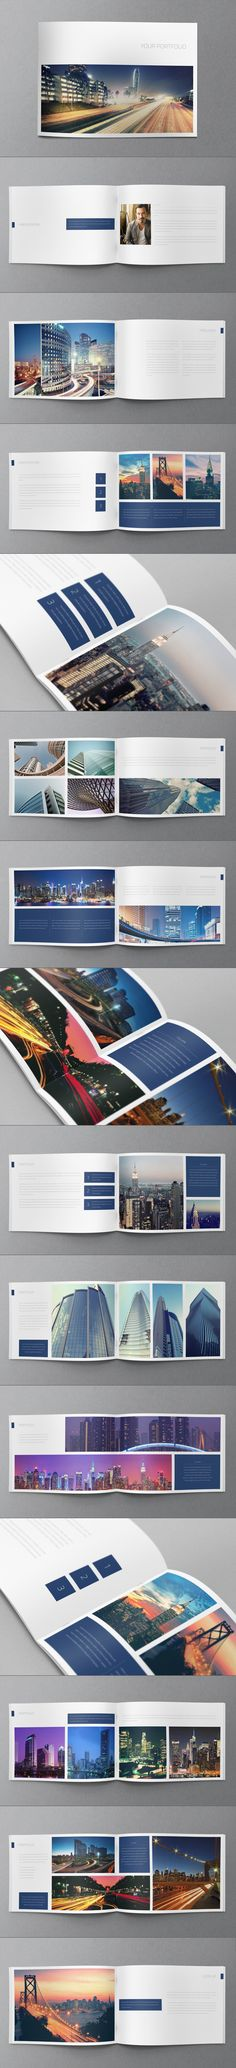 Buy Minimal Portfolio Brochure by AbraDesign on GraphicRiver. MINIMAL PORTFOLIO BROCHURE This brochure is an ideal way to showcase your business, portfolio or catalog. Portfolio Design, Mise En Page Portfolio, Portfolio Layout, Design Brochure, Booklet Design, Graphic Design Layouts, Layout Design, Brochure Cover, Corporate Design